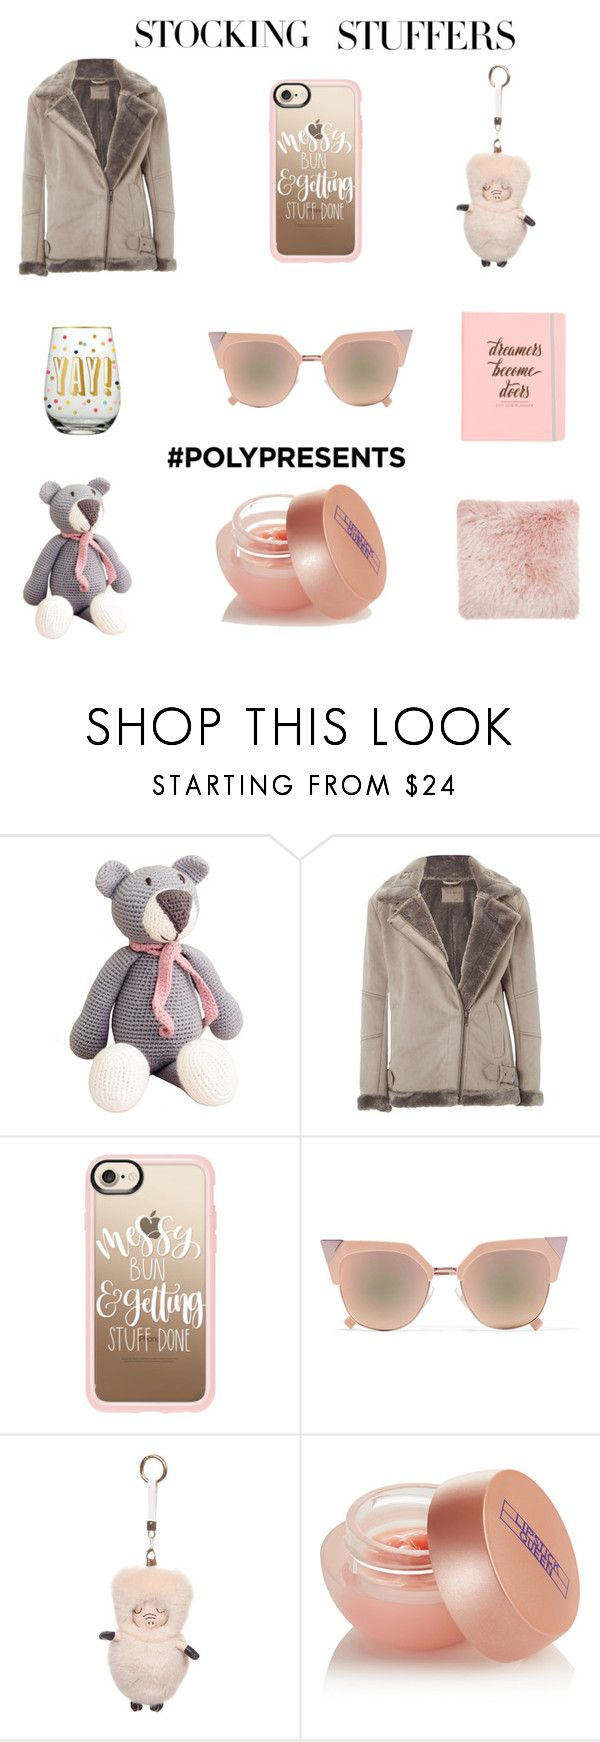 """""""#PolyPresents: Stocking Stuffers"""" by ladylly ❤ liked on Polyvore featuring White Stuff, Casetify, Fendi, FRR, Lipstick Queen, contestentry and polyPresents"""